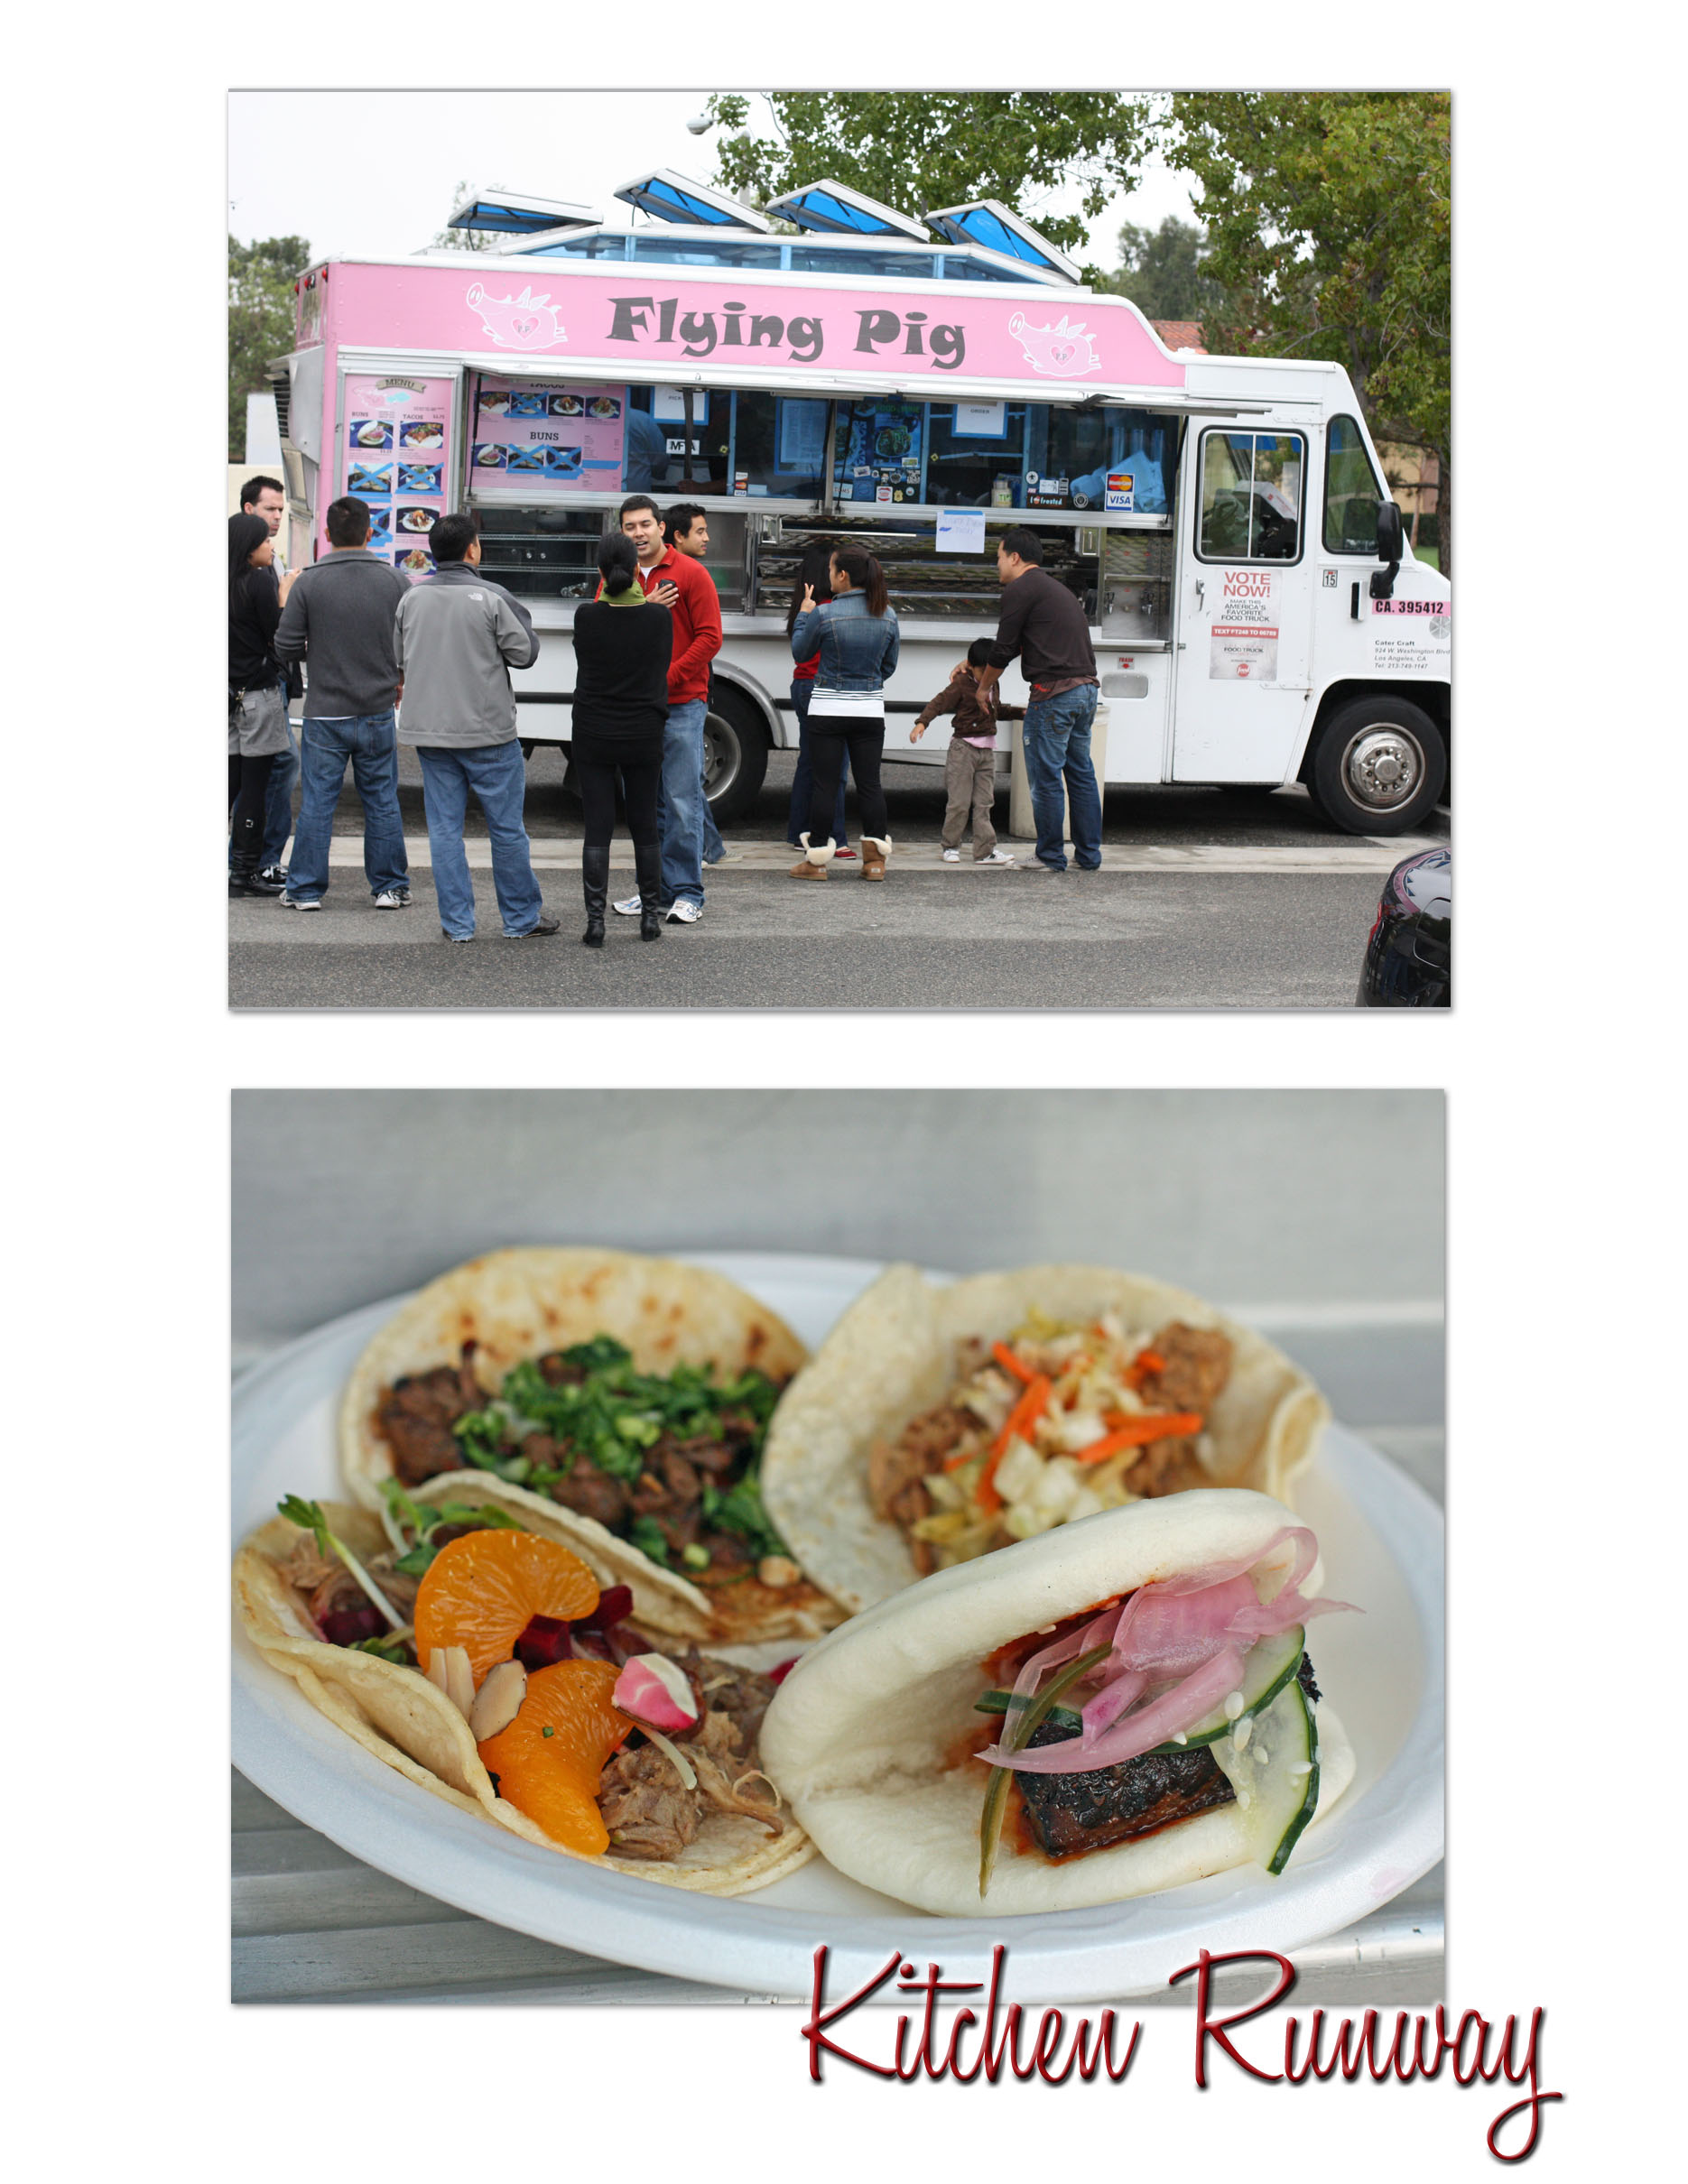 the flying pig truck